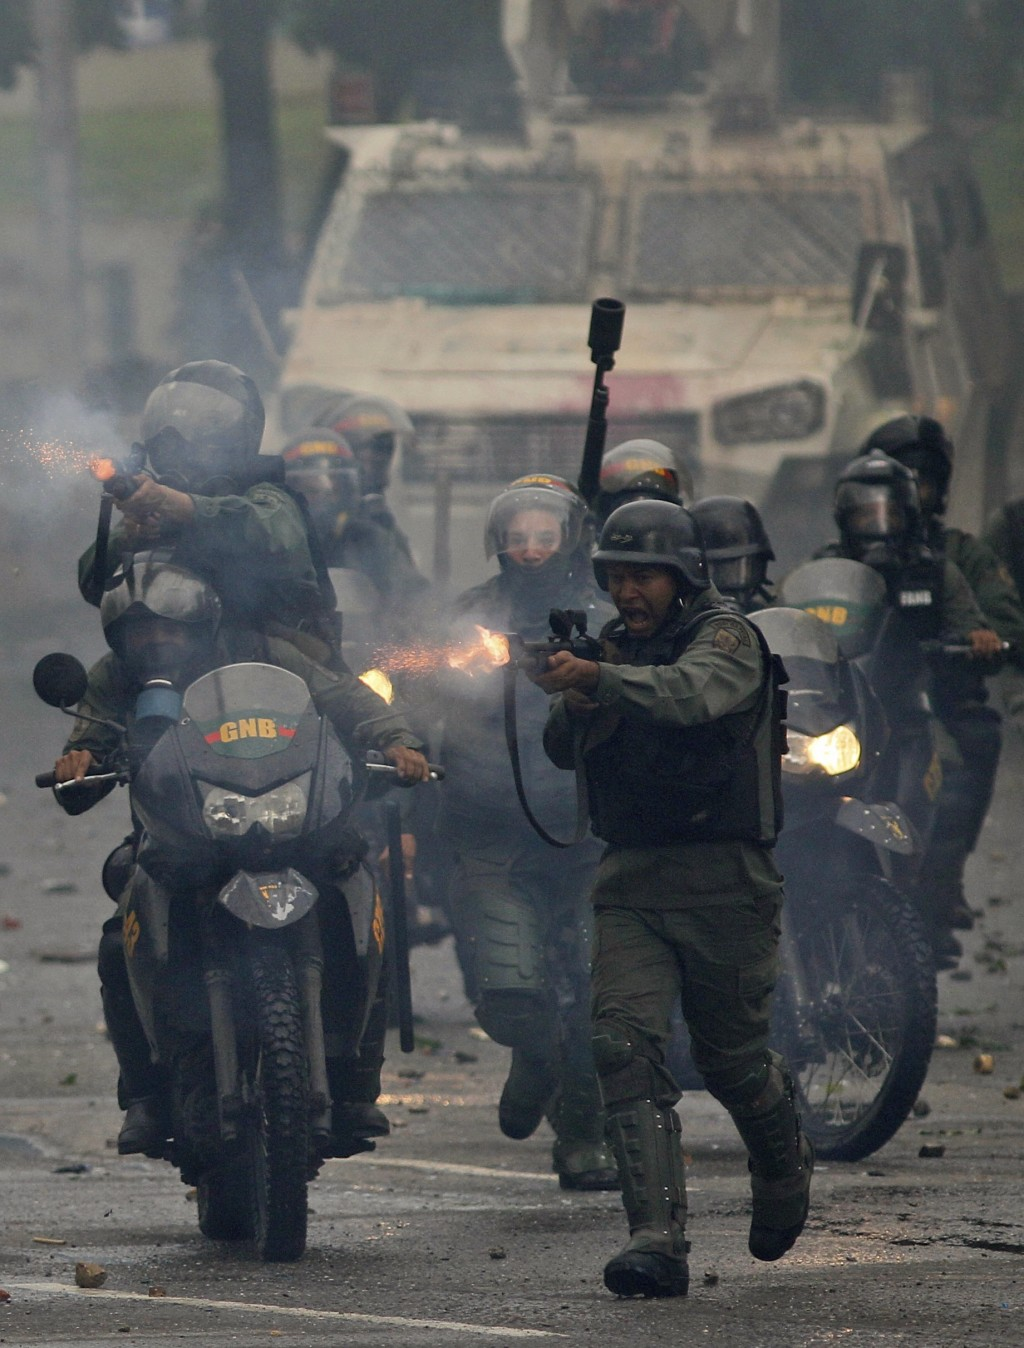 FILE - In this July 28, 2017 file photo, Bolivarian National Guards advance on anti-government demonstrators with rubber bullets in Caracas, Venezuela